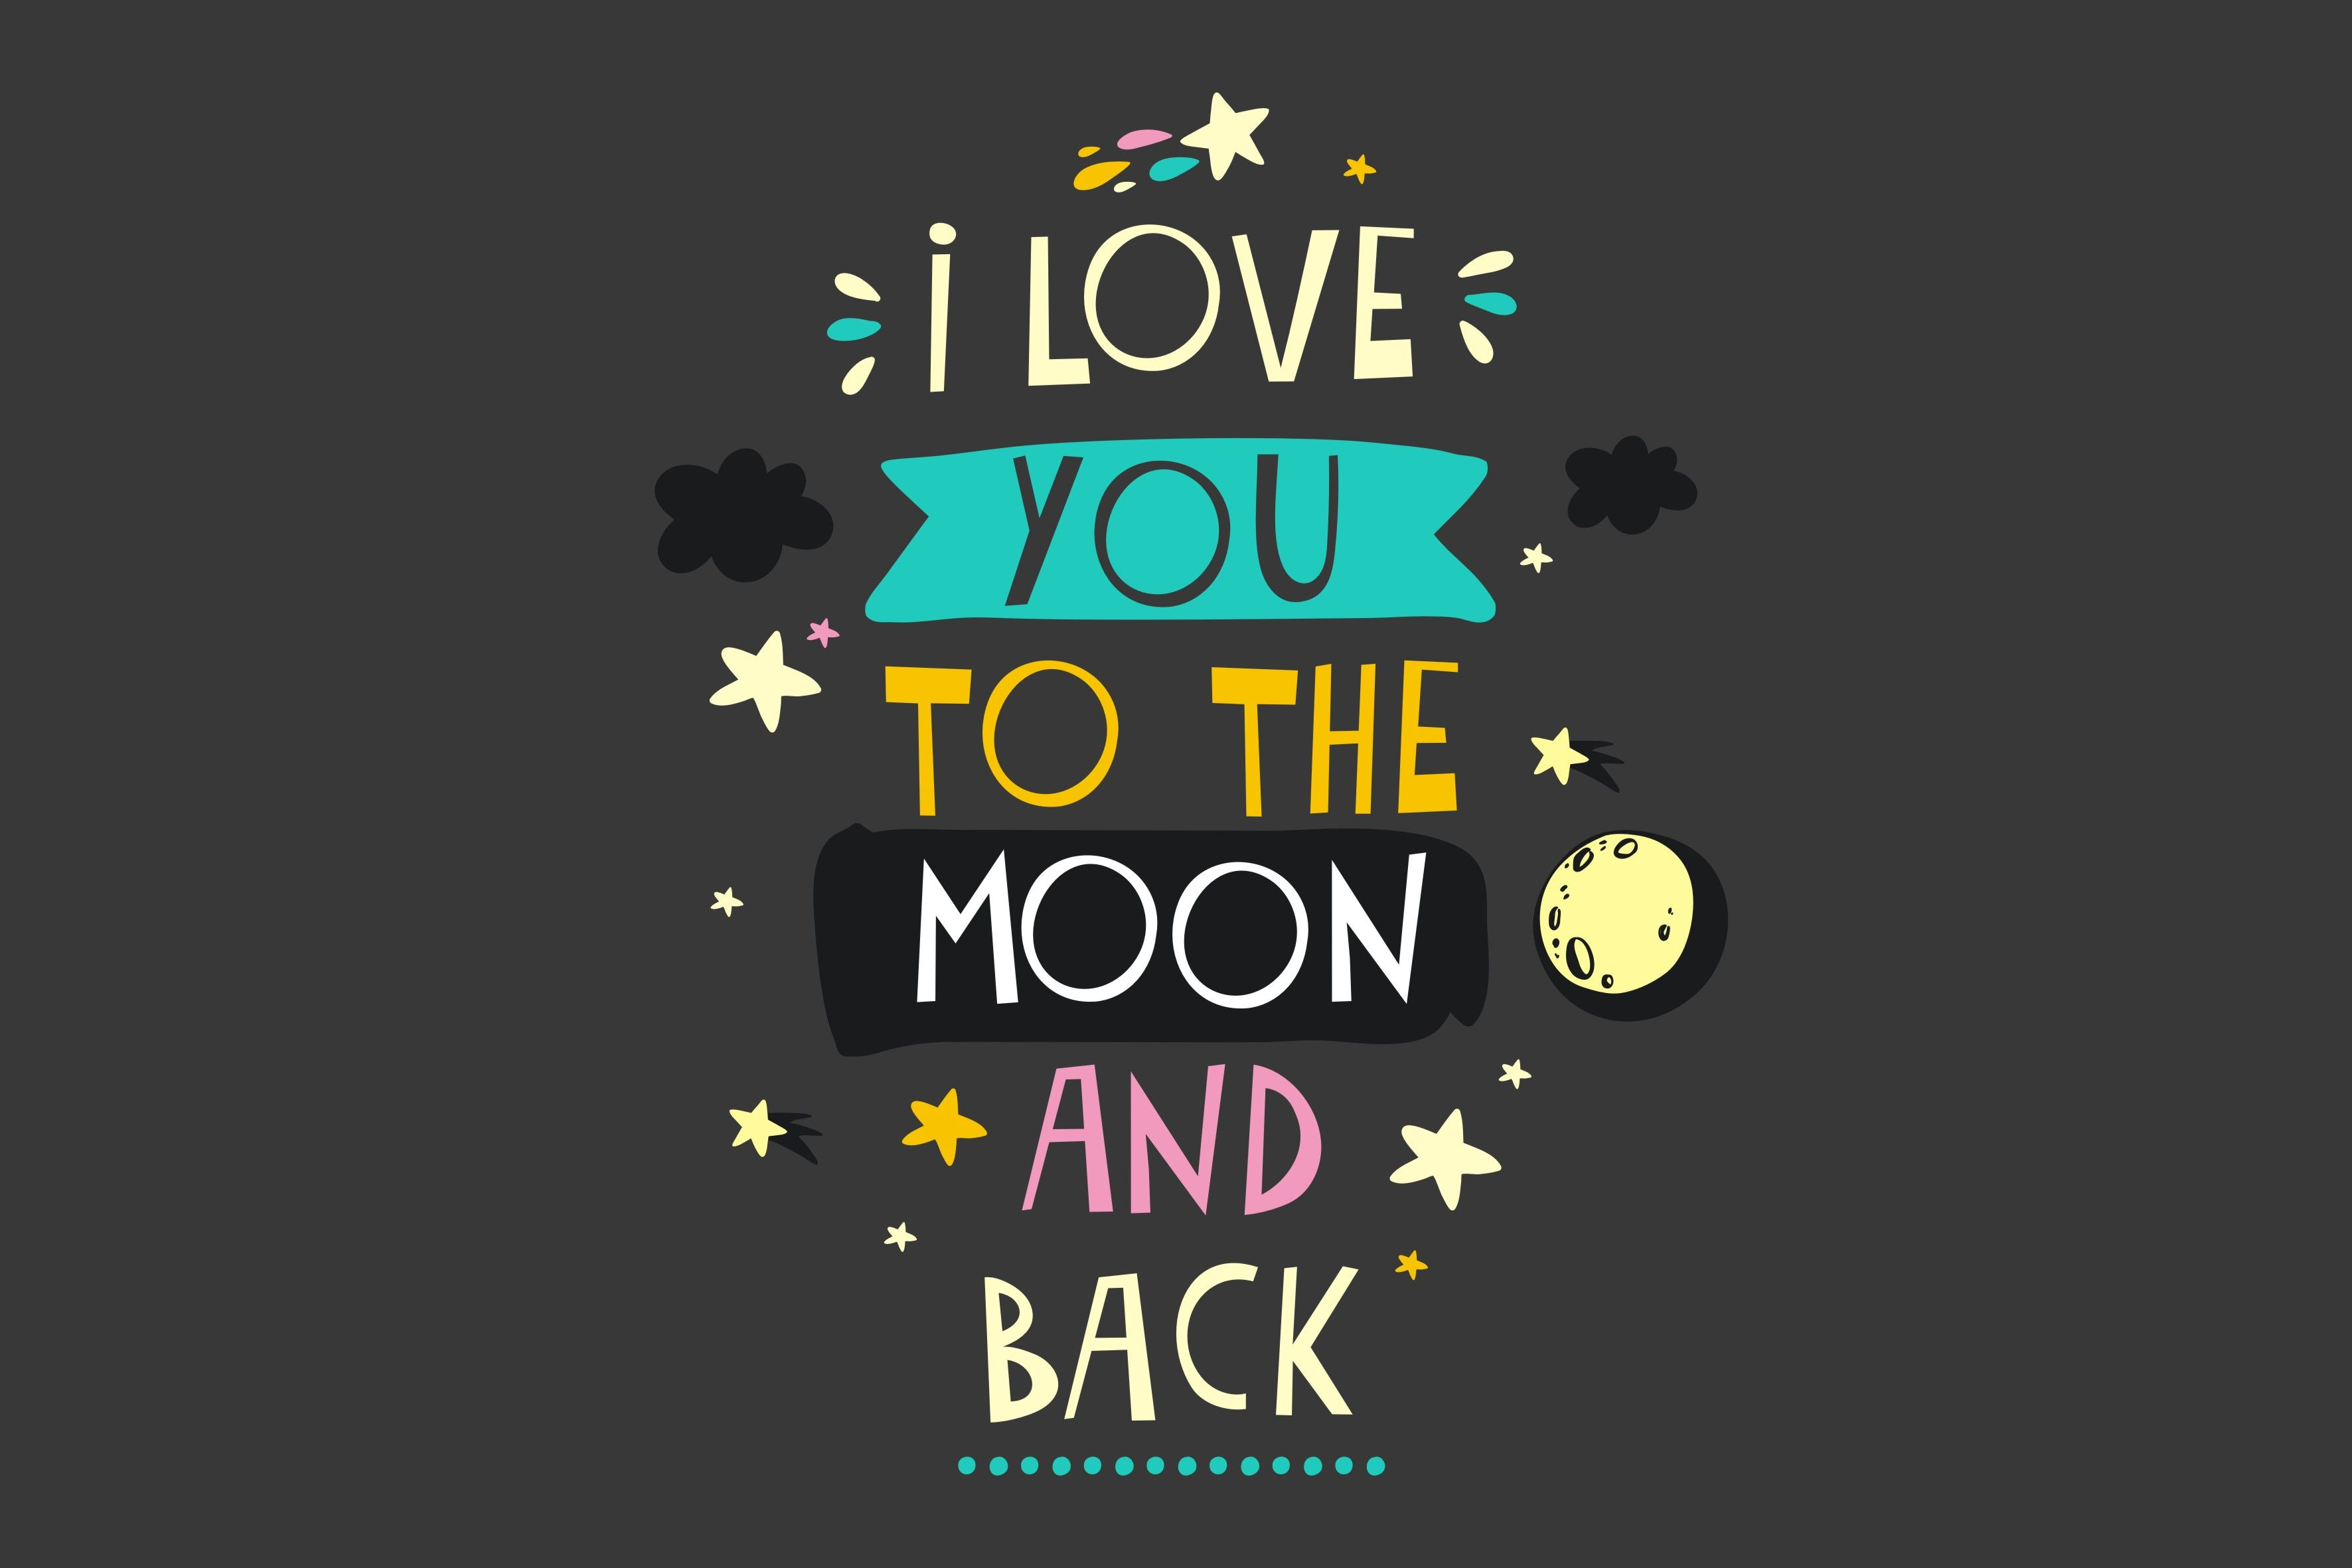 I Love You To The Moon And Back Valentines Day Wallpaper Phone Wallpapers Valentines Wallpaper Love Wallpaper Backgrounds